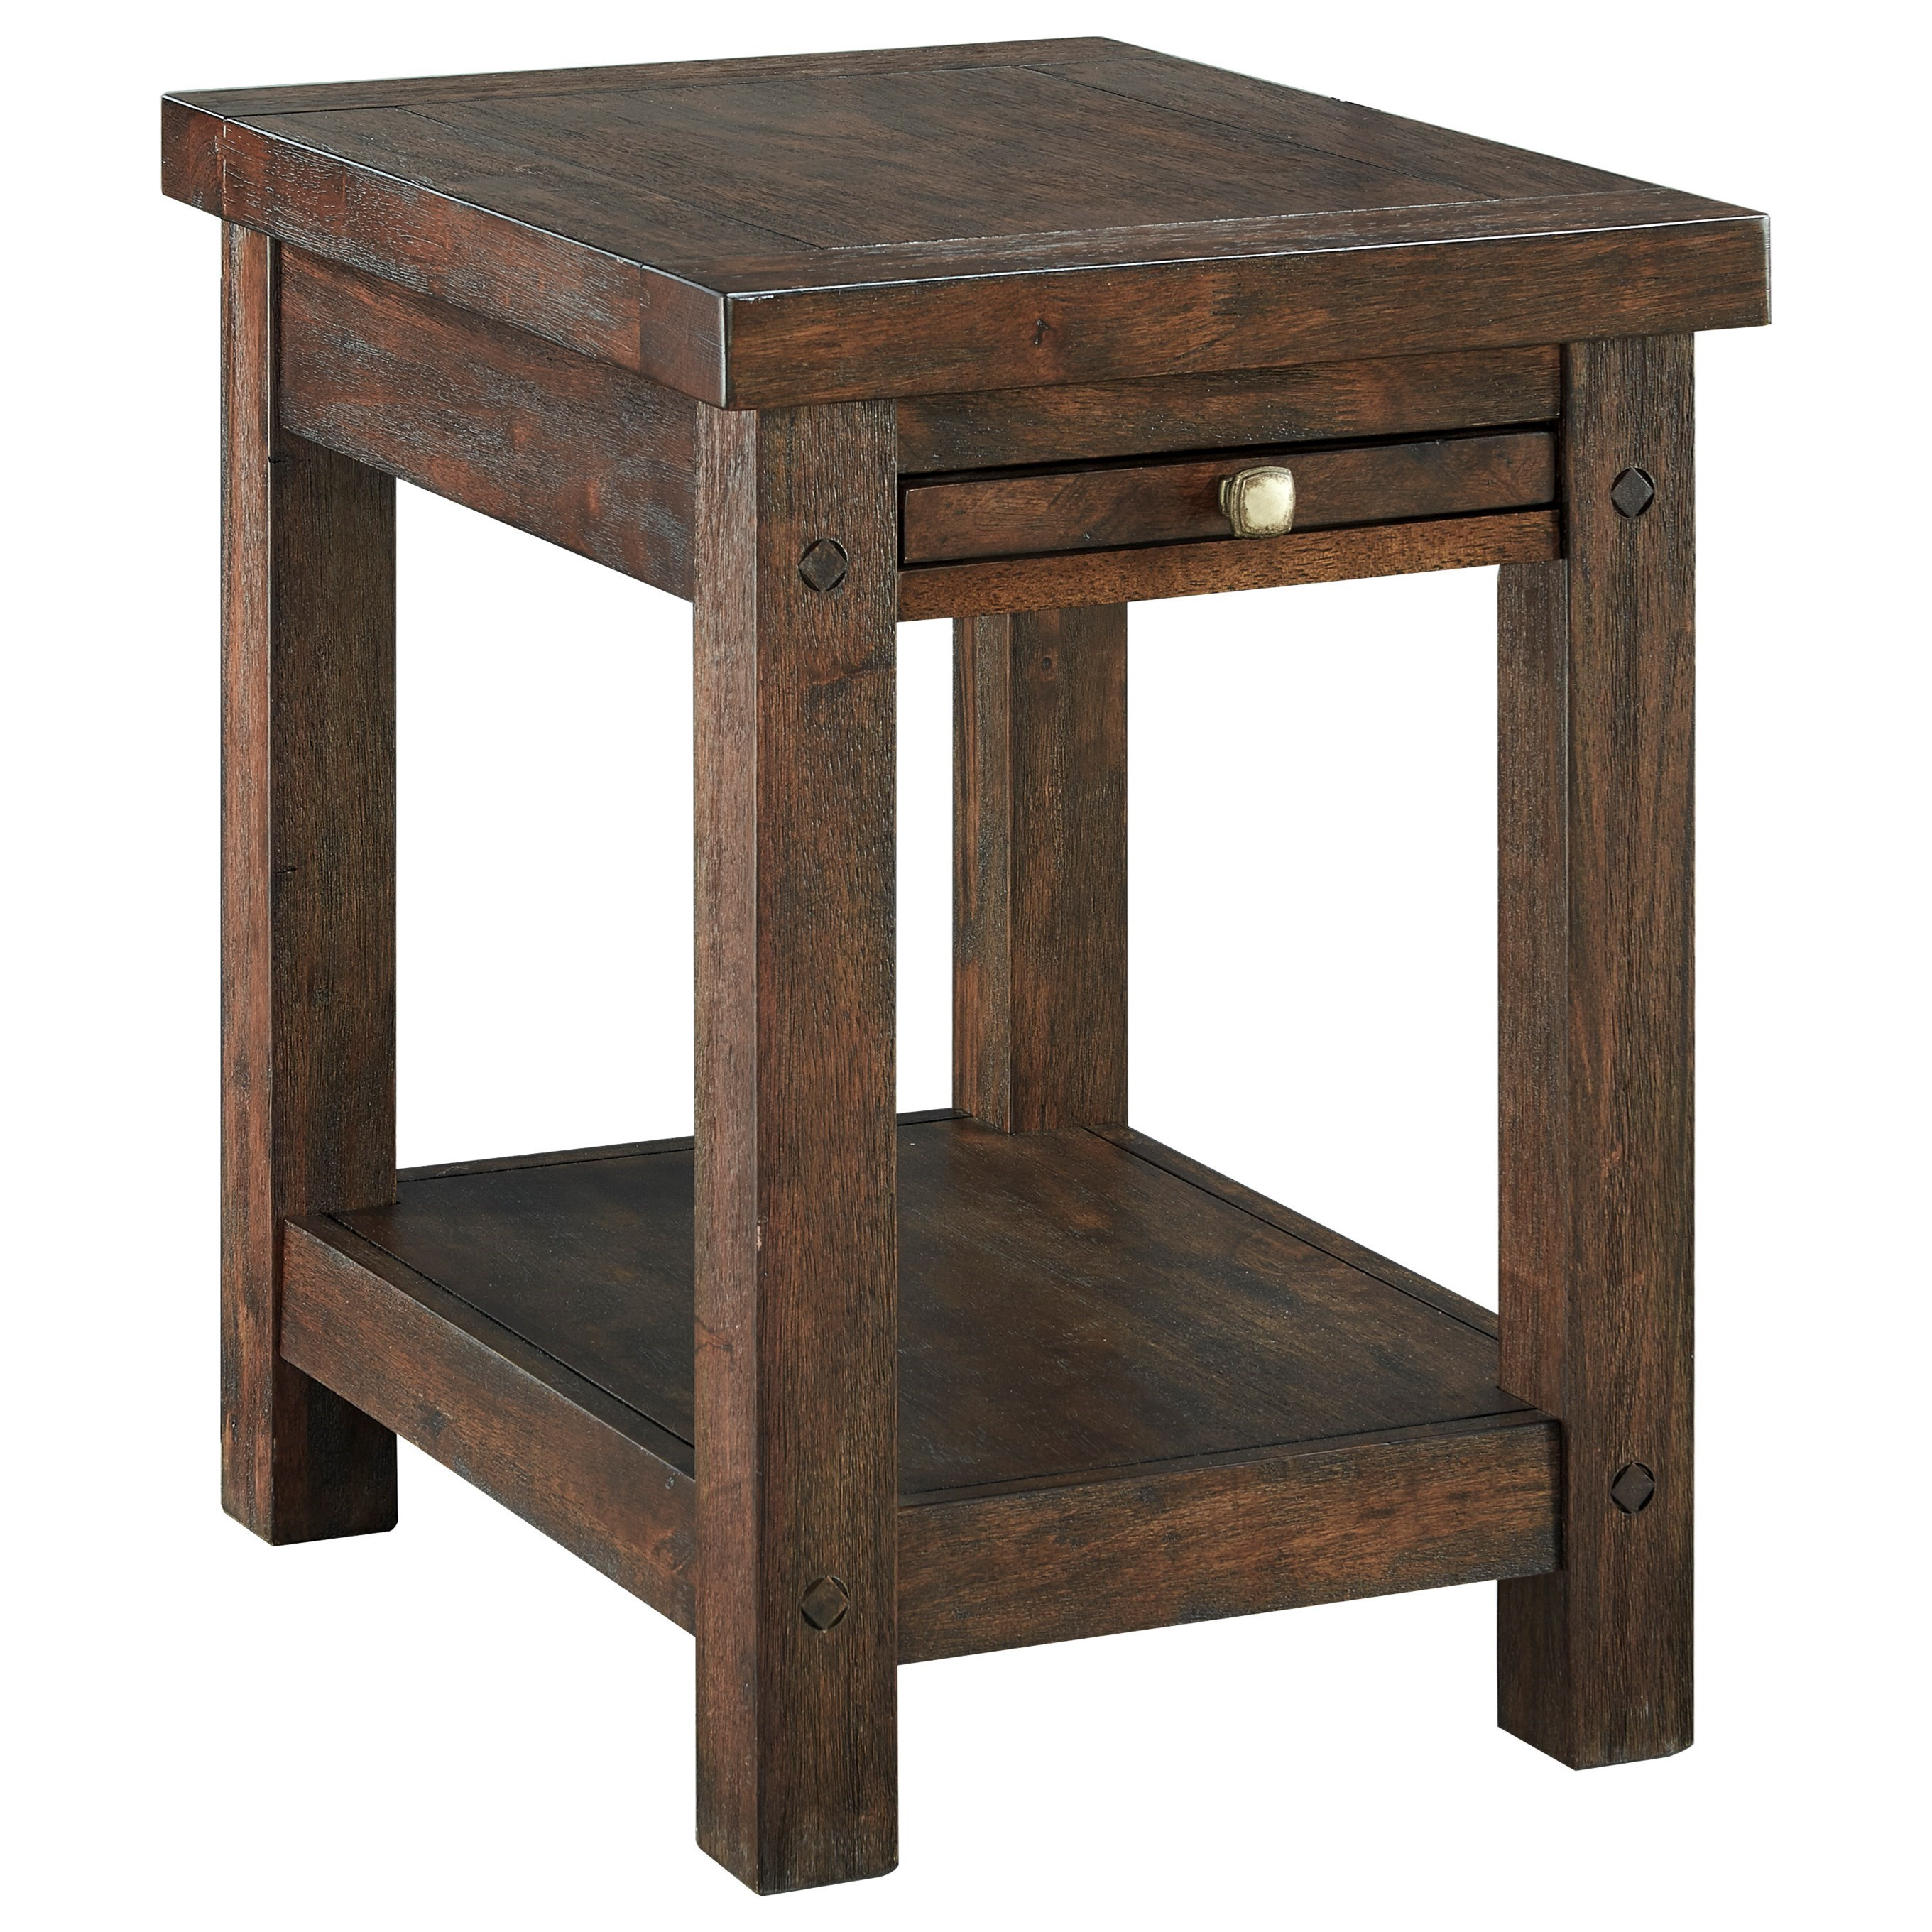 Signature Design by Ashley Windville Chair Side End Table - Item Number: T862-7